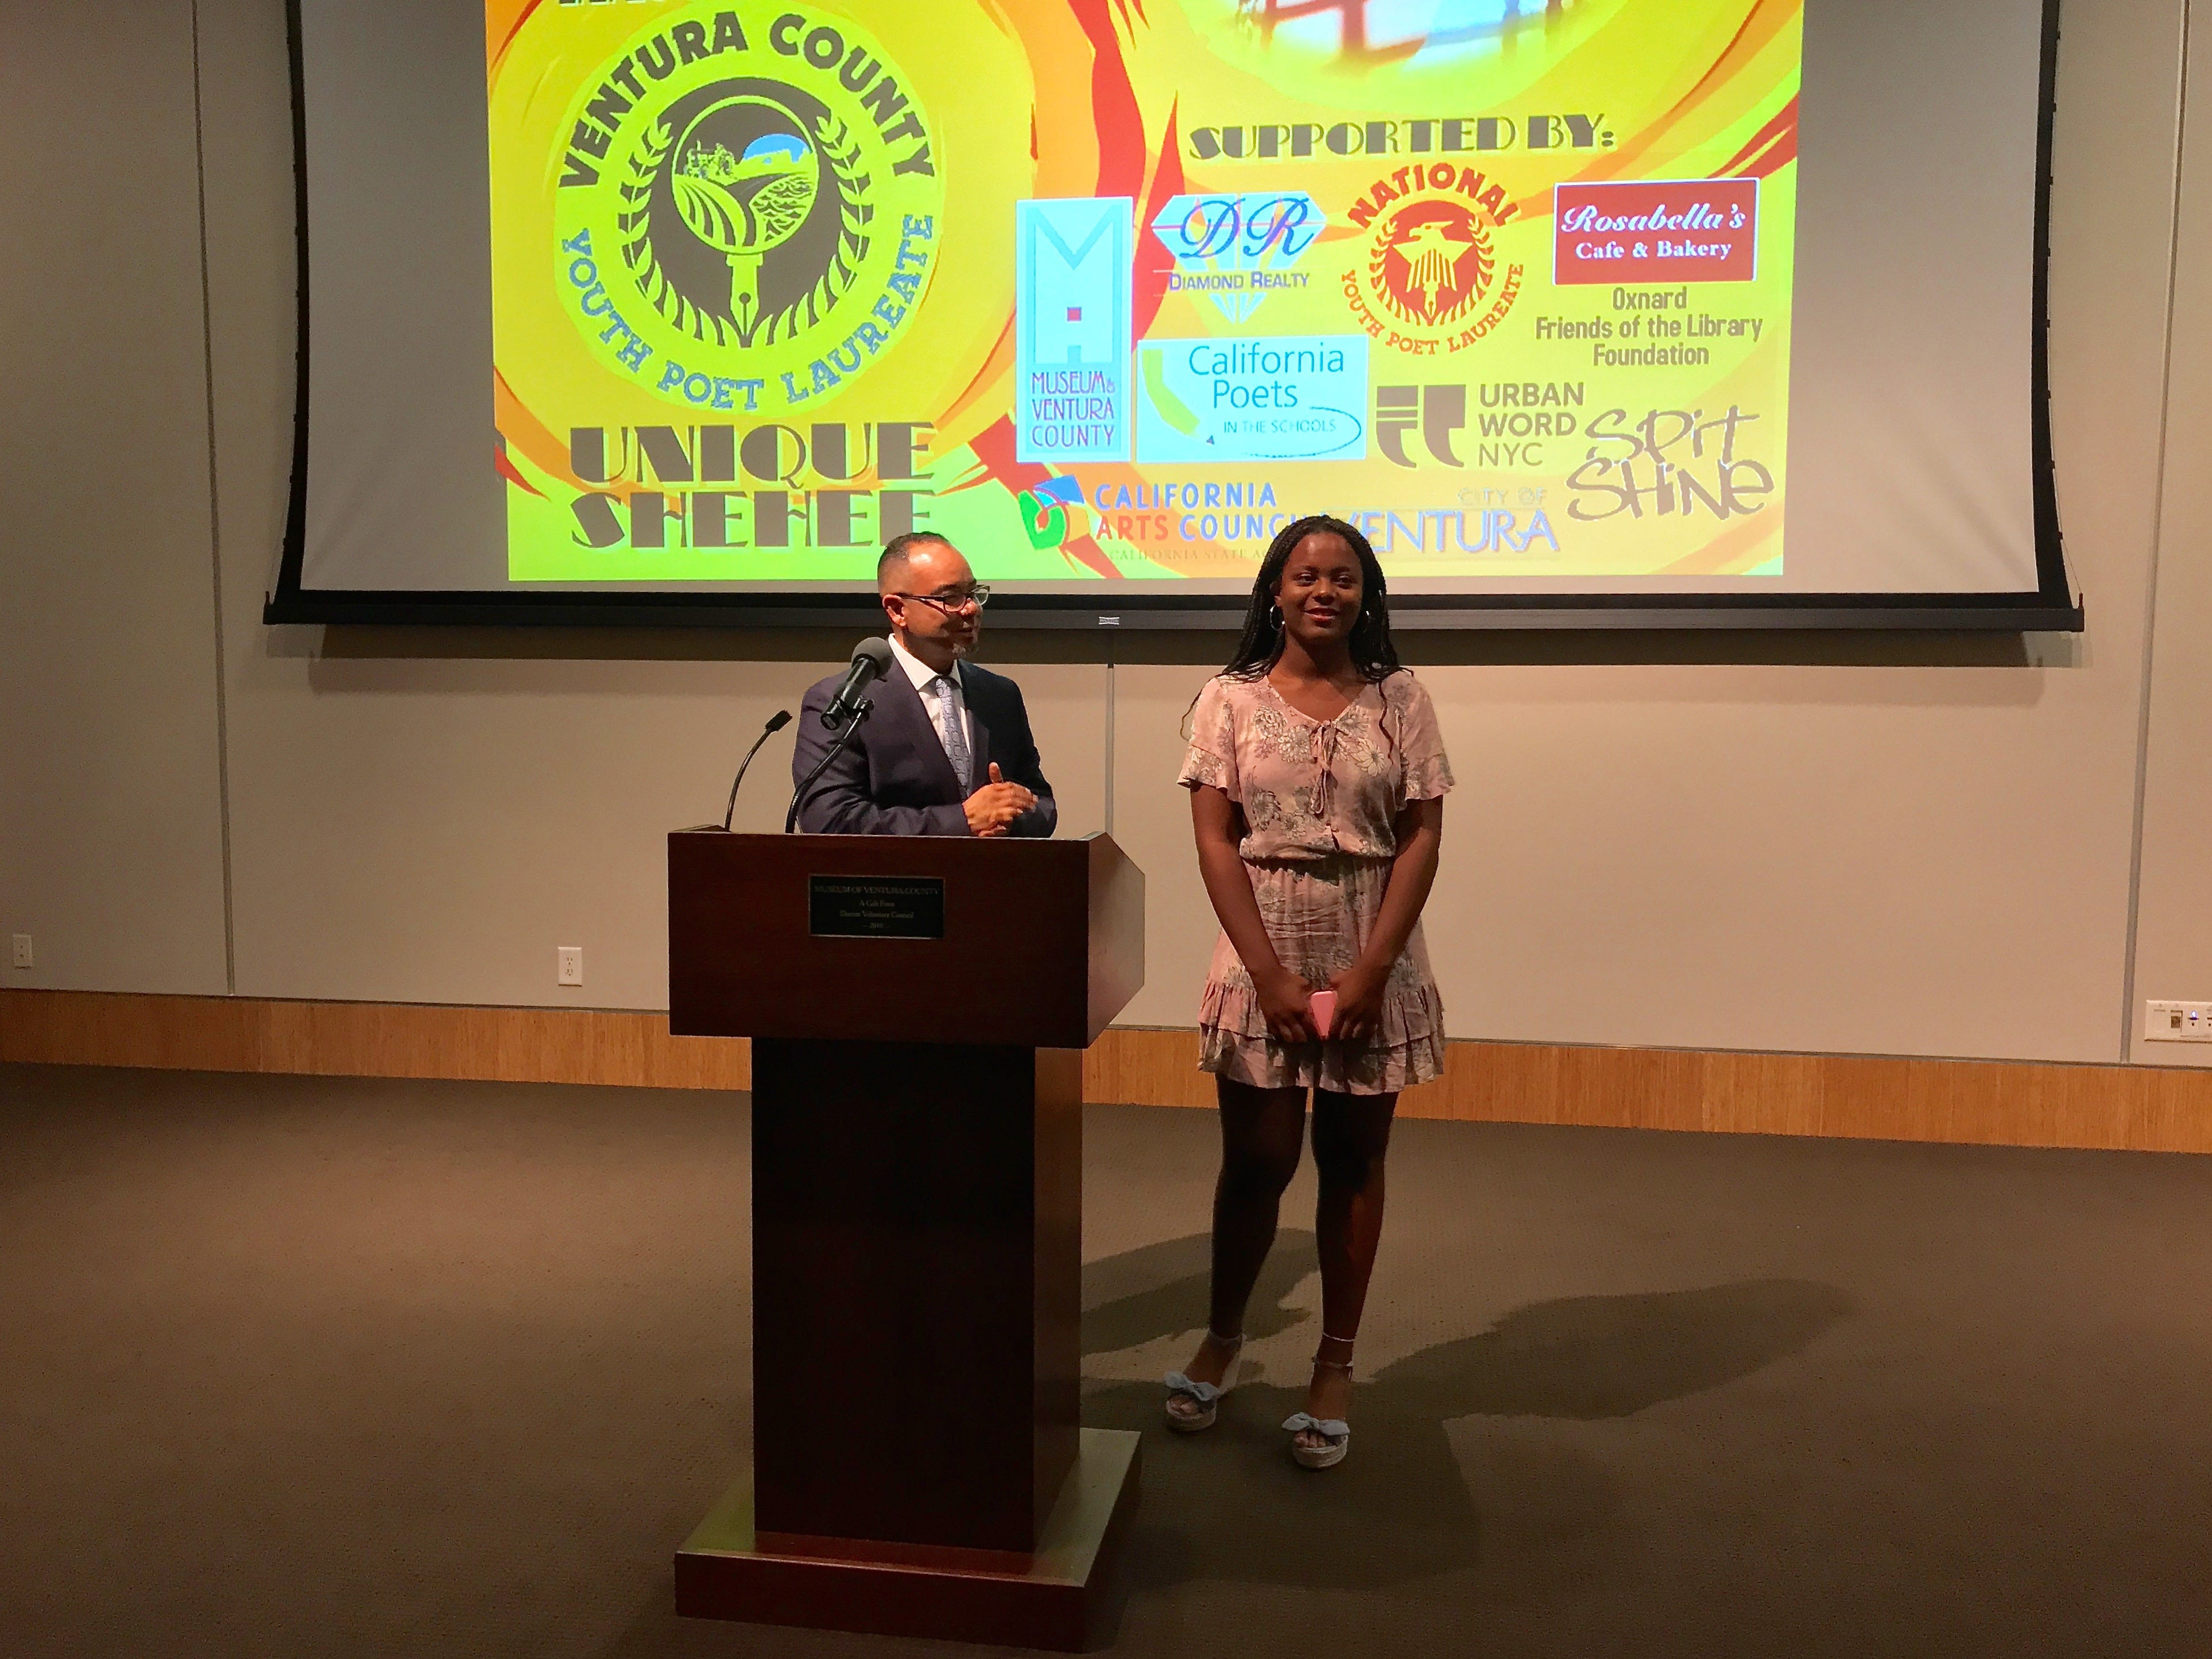 Fernando Salinas, literary arts programs coordinator for the Ventura County Arts Council, congratulates Unique Shehee on becoming the first Ventura County youth poet laureate.